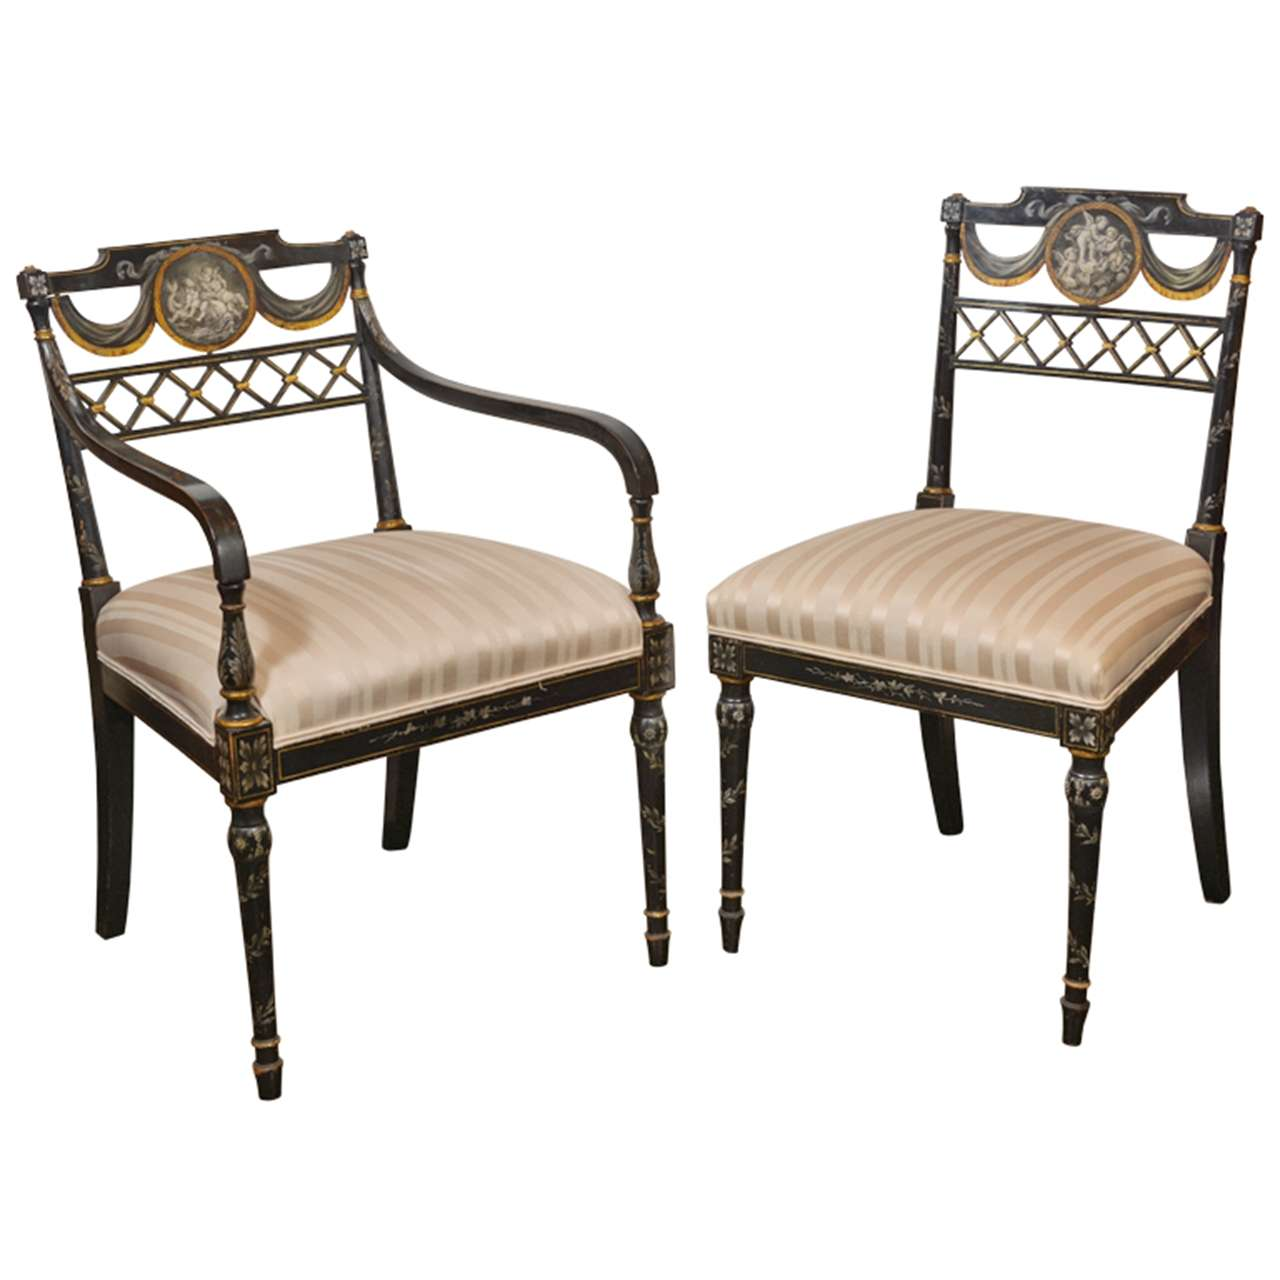 Black Chairs For Sale Set Of Important Regency Period Black Lacquered Chairs For